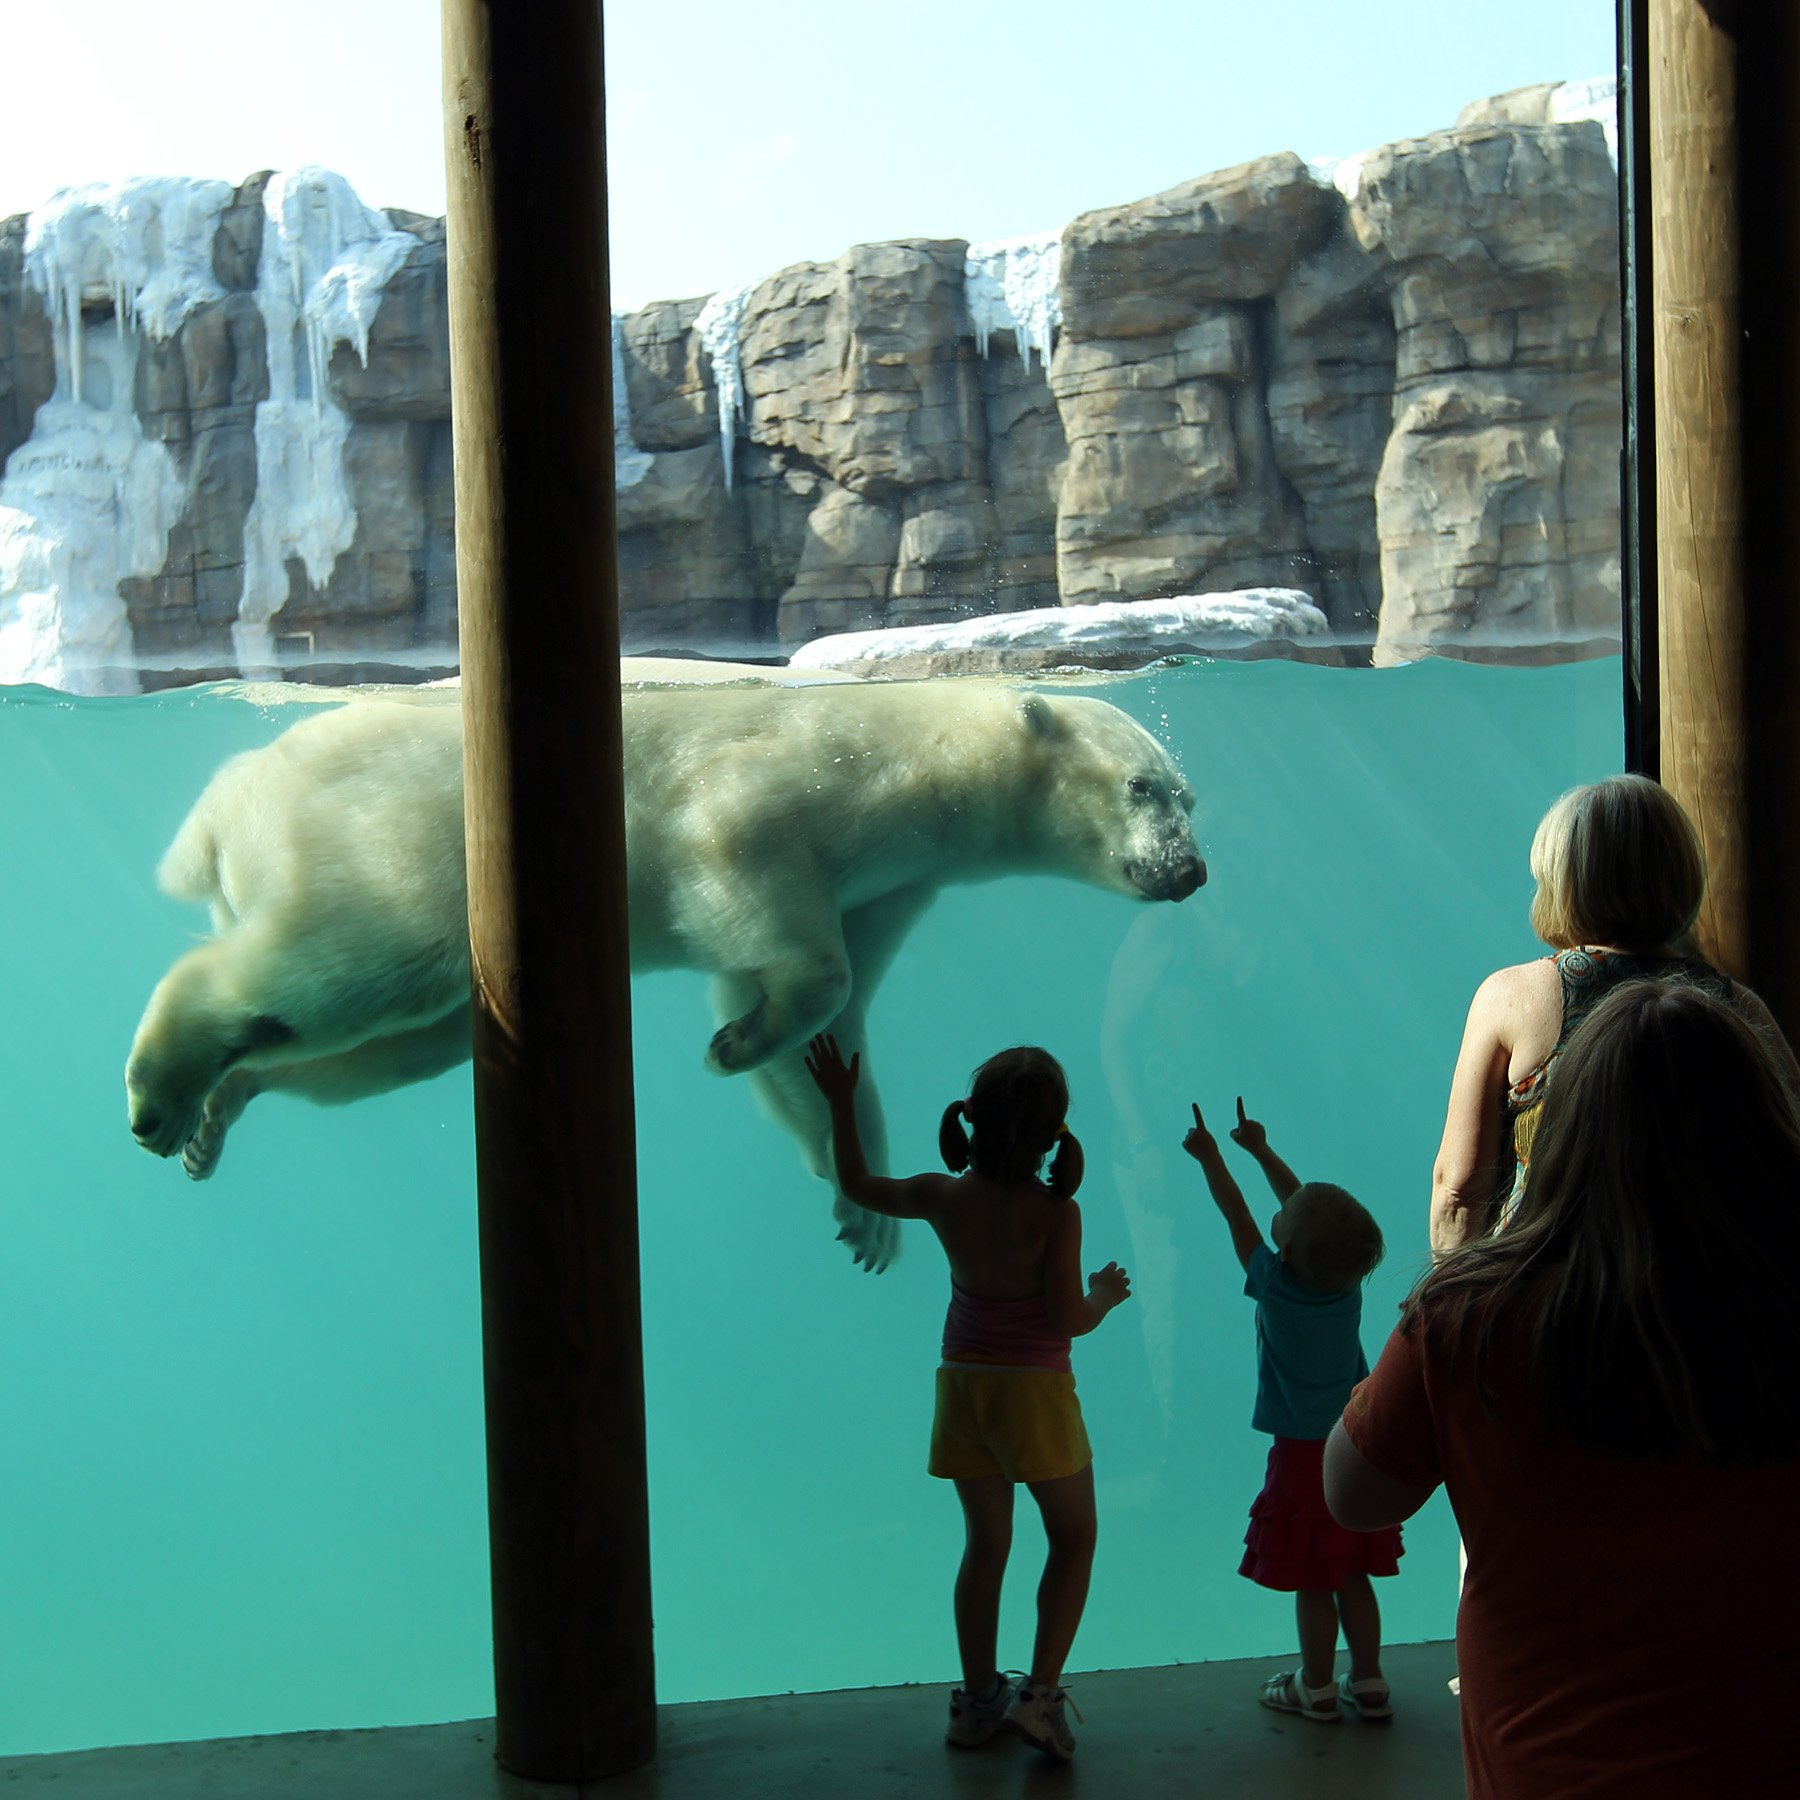 Kansas City Zoo Polar Bear Passage:<br/>A World-Class Attraction